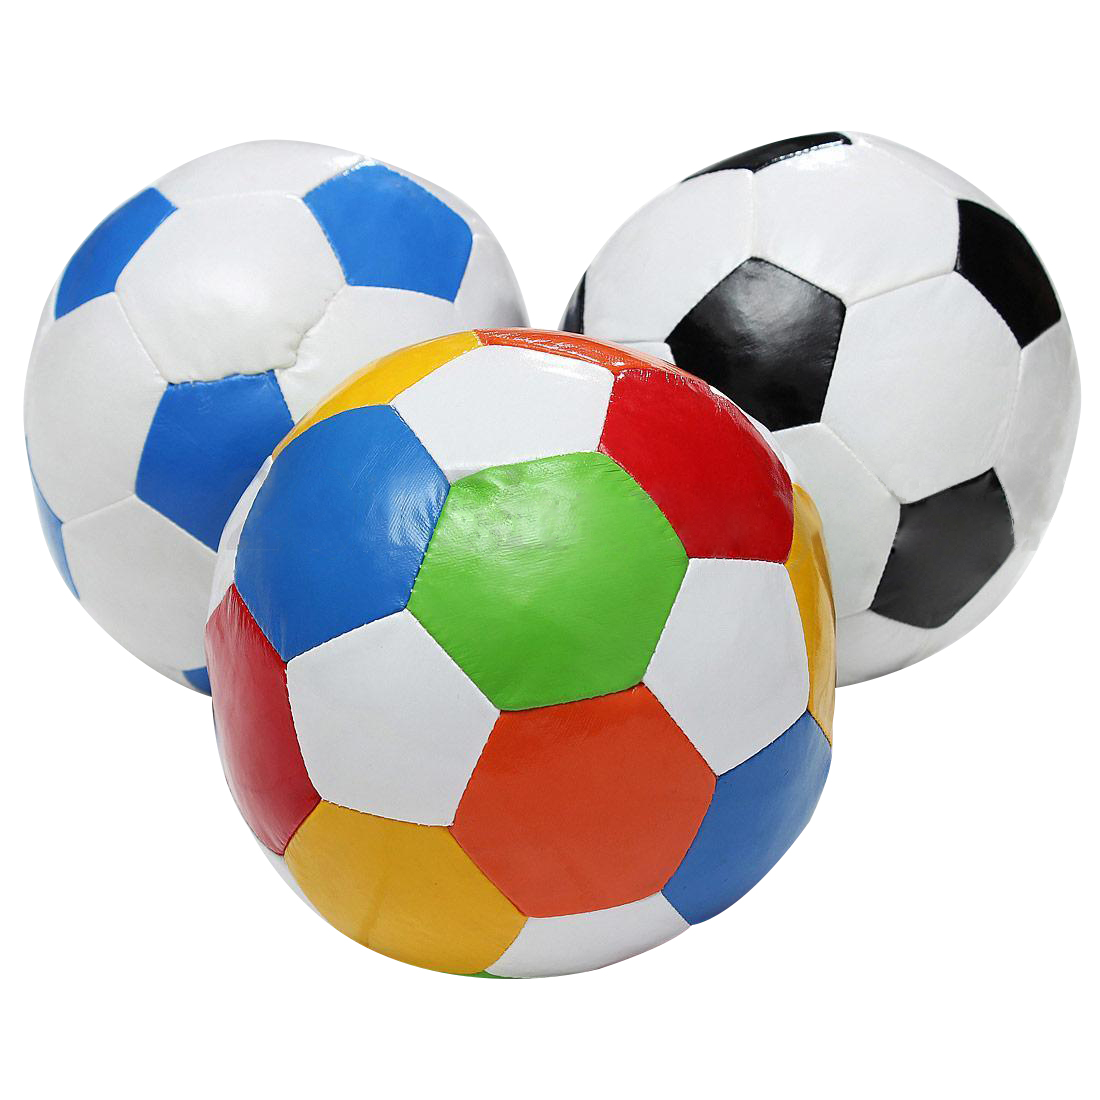 1PCS 14.4cm Soft Indoor PVC Surface Football Soccer Play Ball Toy for boys random color image